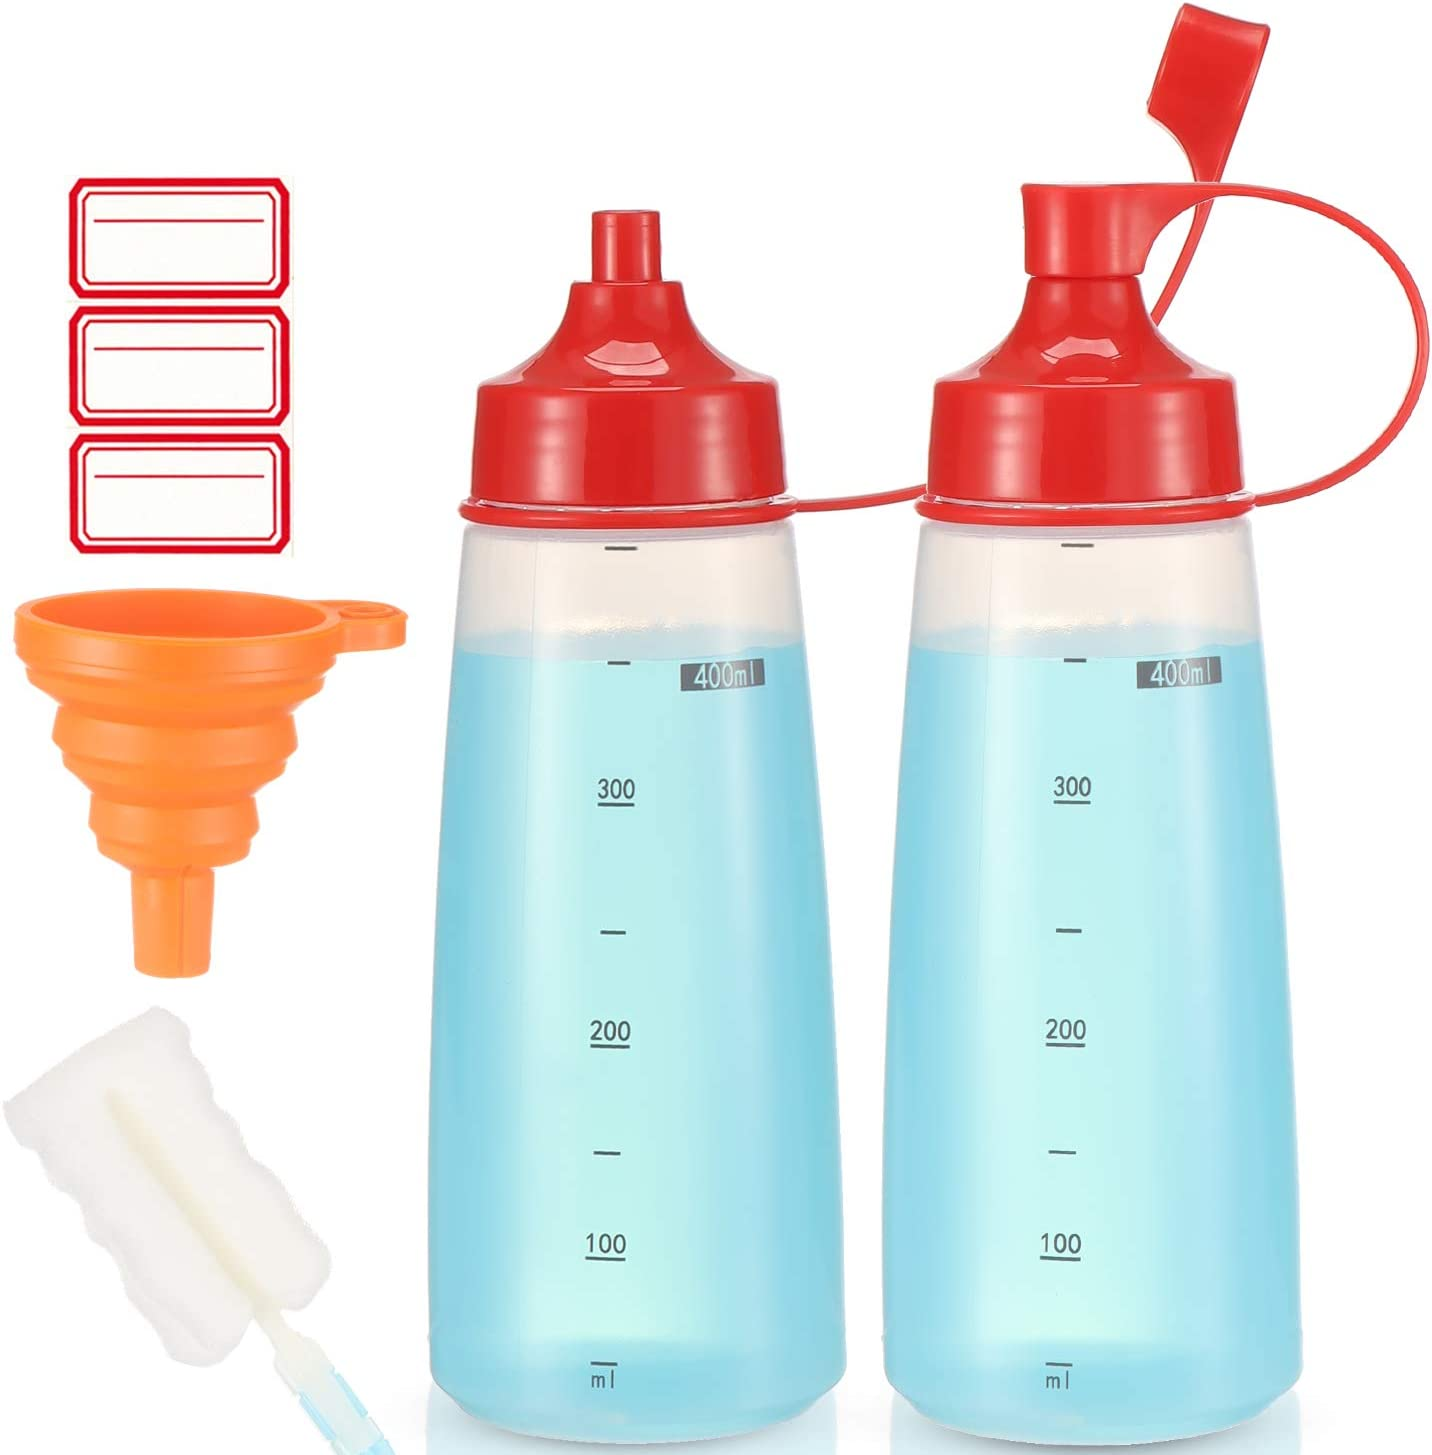 Condiment Squeeze Bottle Wide Mouth, Ondiomn 2 Pack 400ml Clear Squeeze Bottles for Condiments, Paint, Ketchup, Mustard, Oil, Sauces, Resin, Baking, Cake Decorating, Cleaning, BPA Free-Food Grade